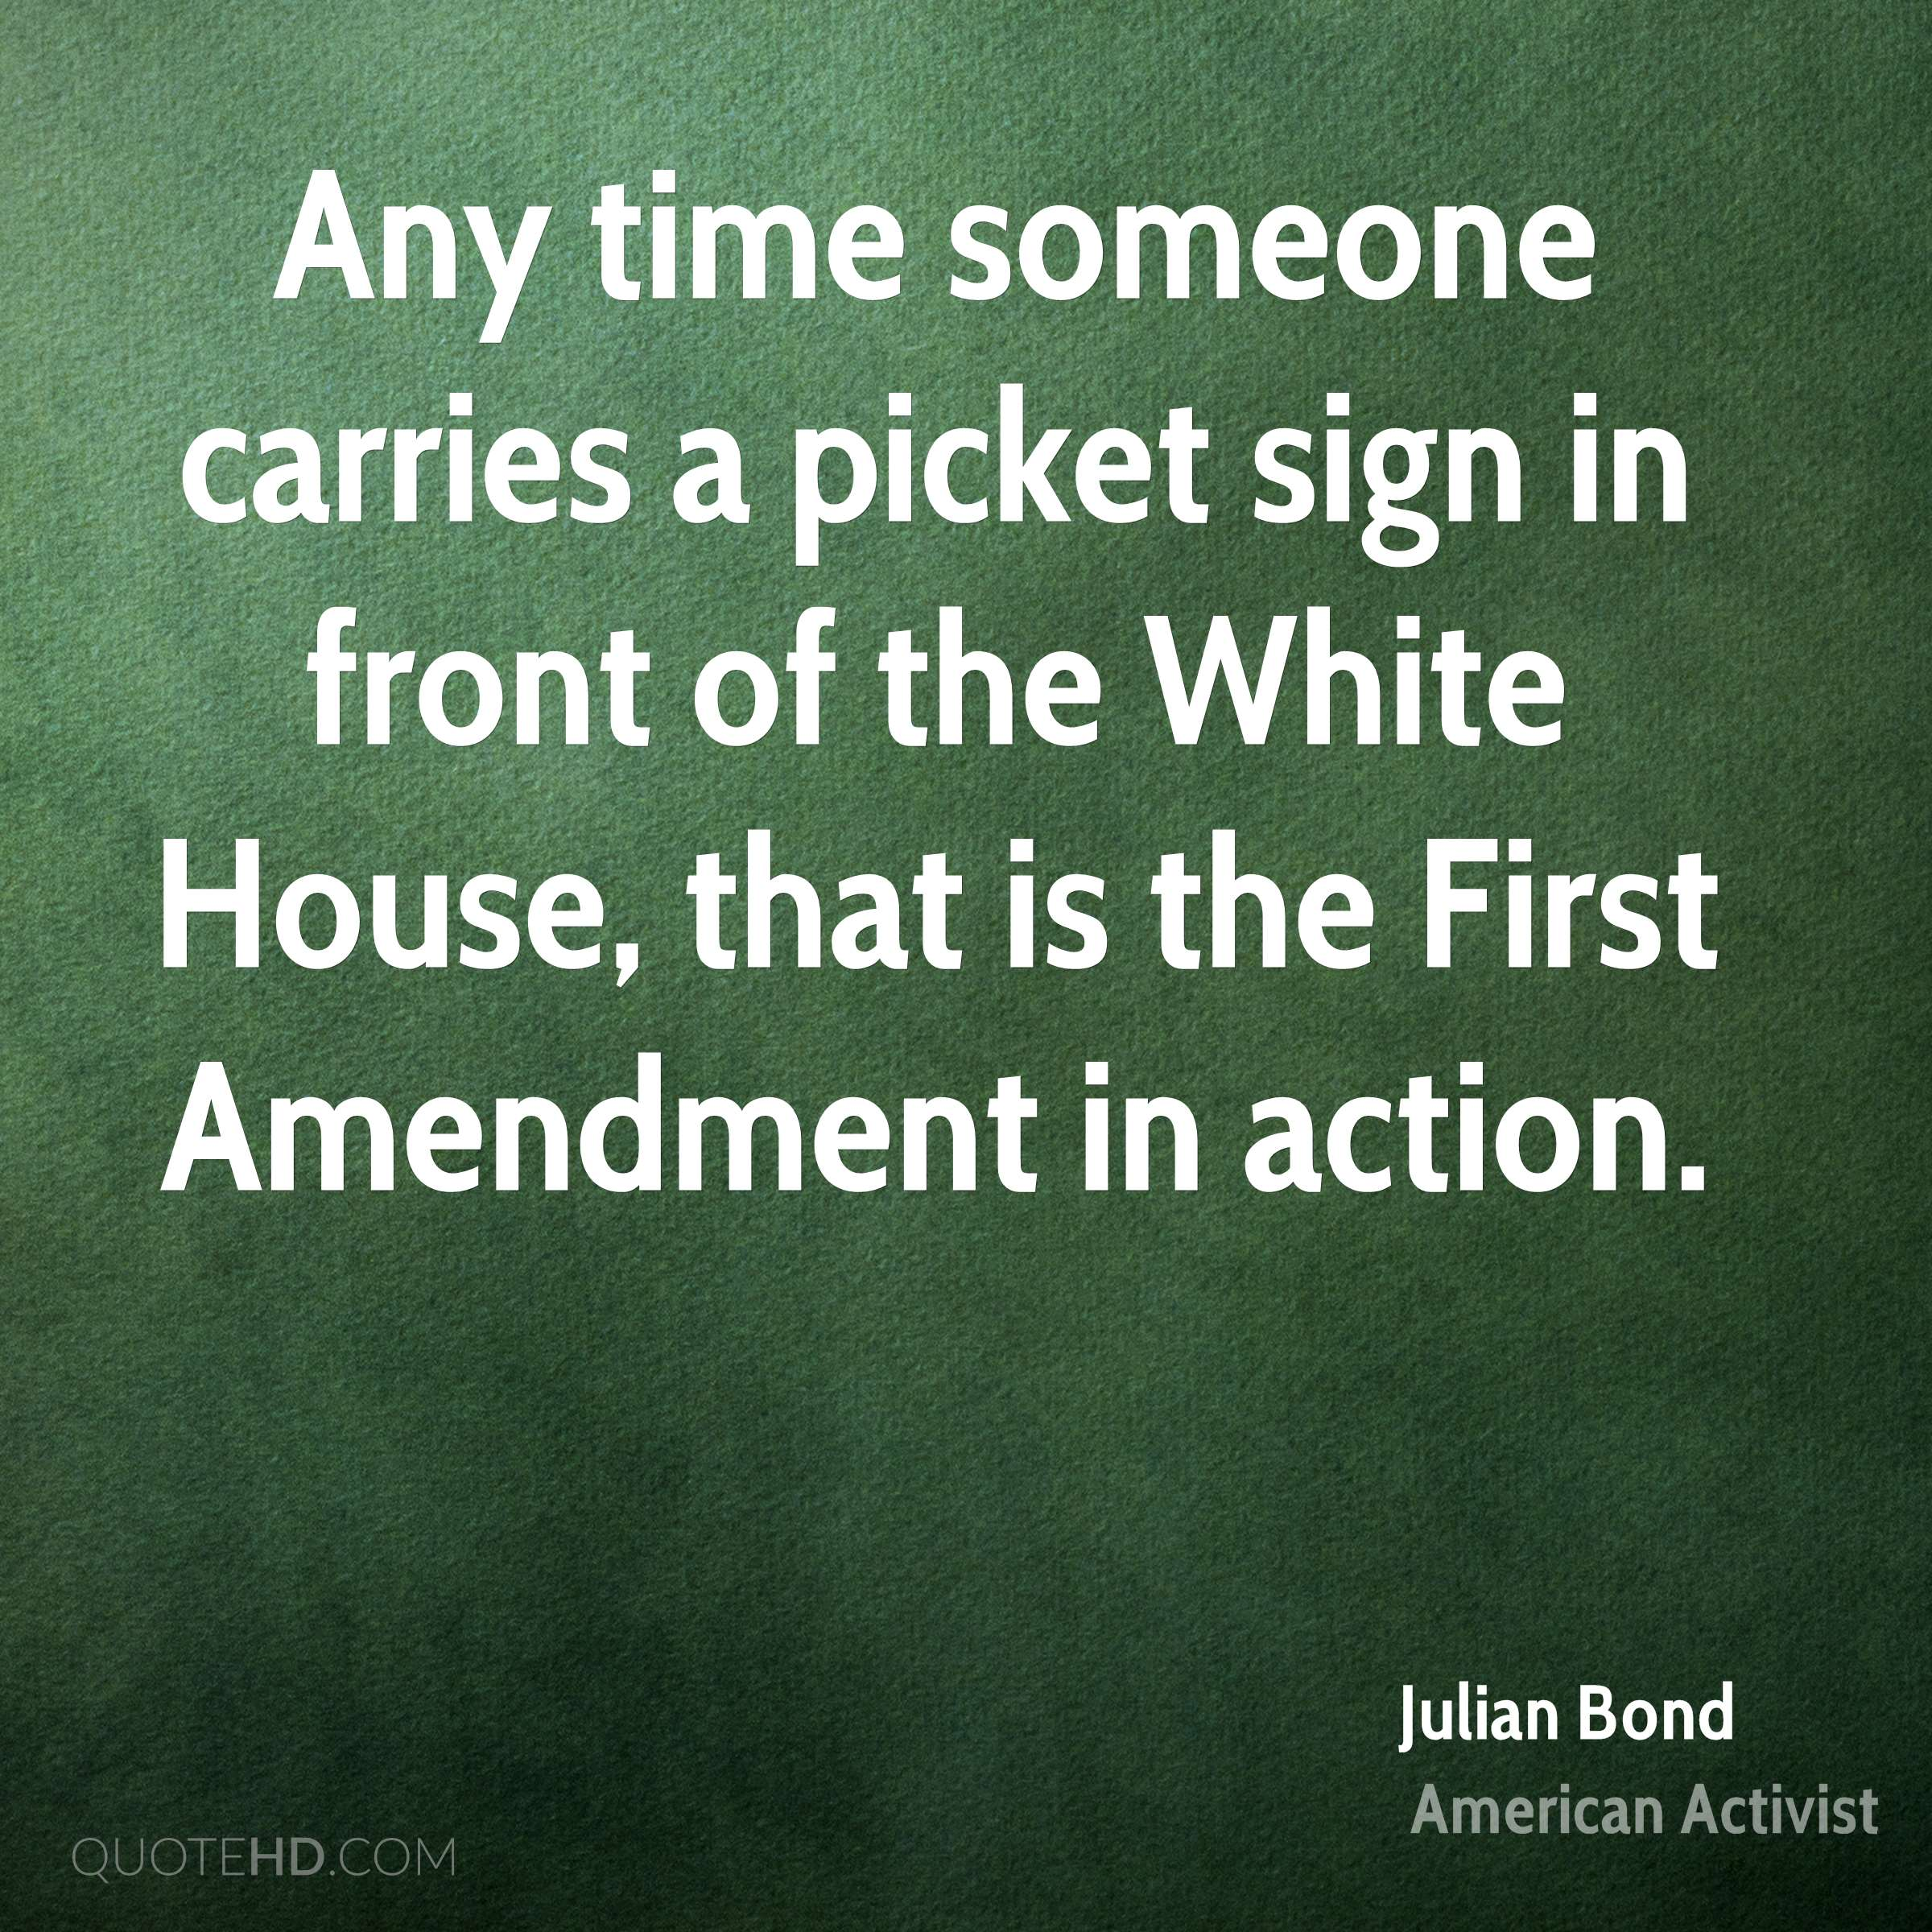 Any time someone carries a picket sign in front of the White House, that is the First Amendment in action.